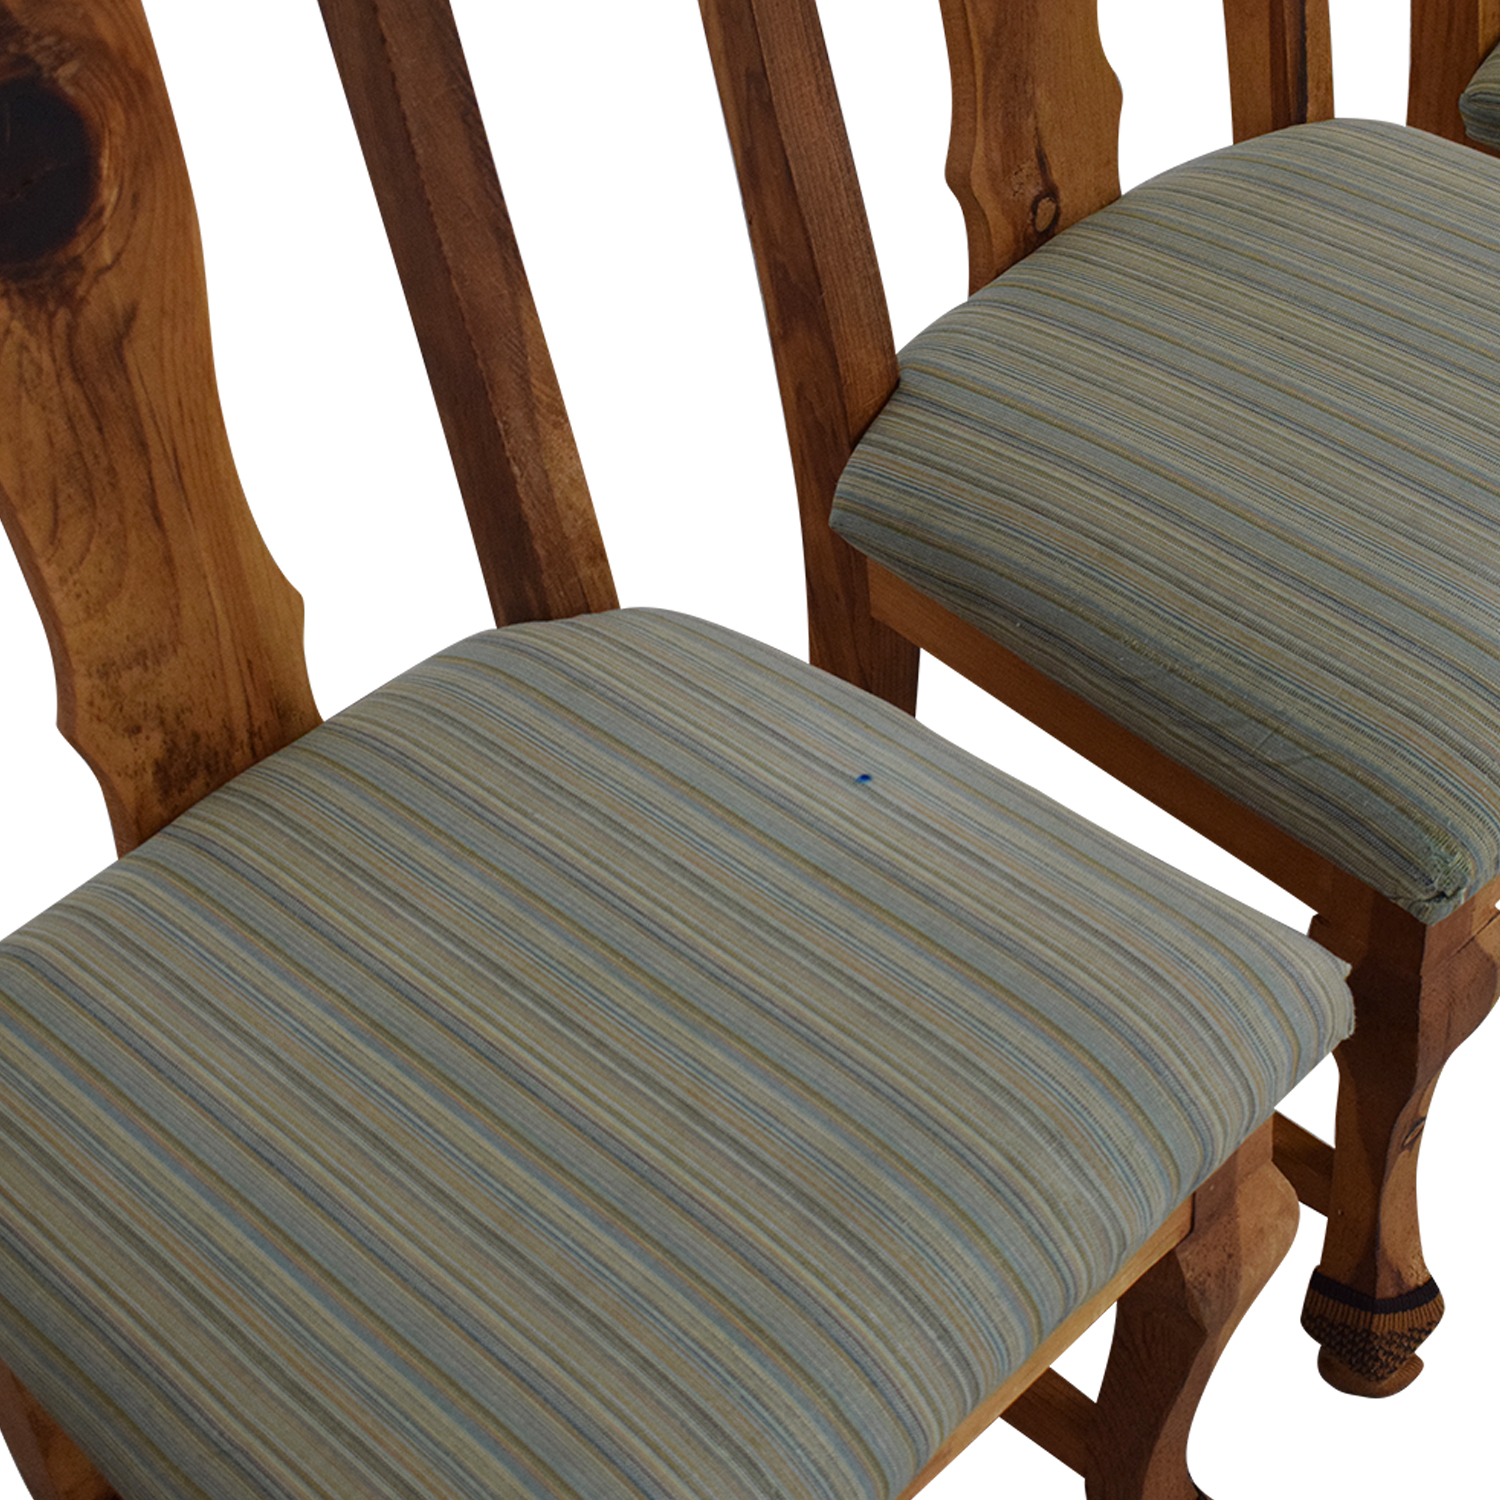 Jensen-Lewis Jensen-Lewis Fiddle Back Dining Chairs used